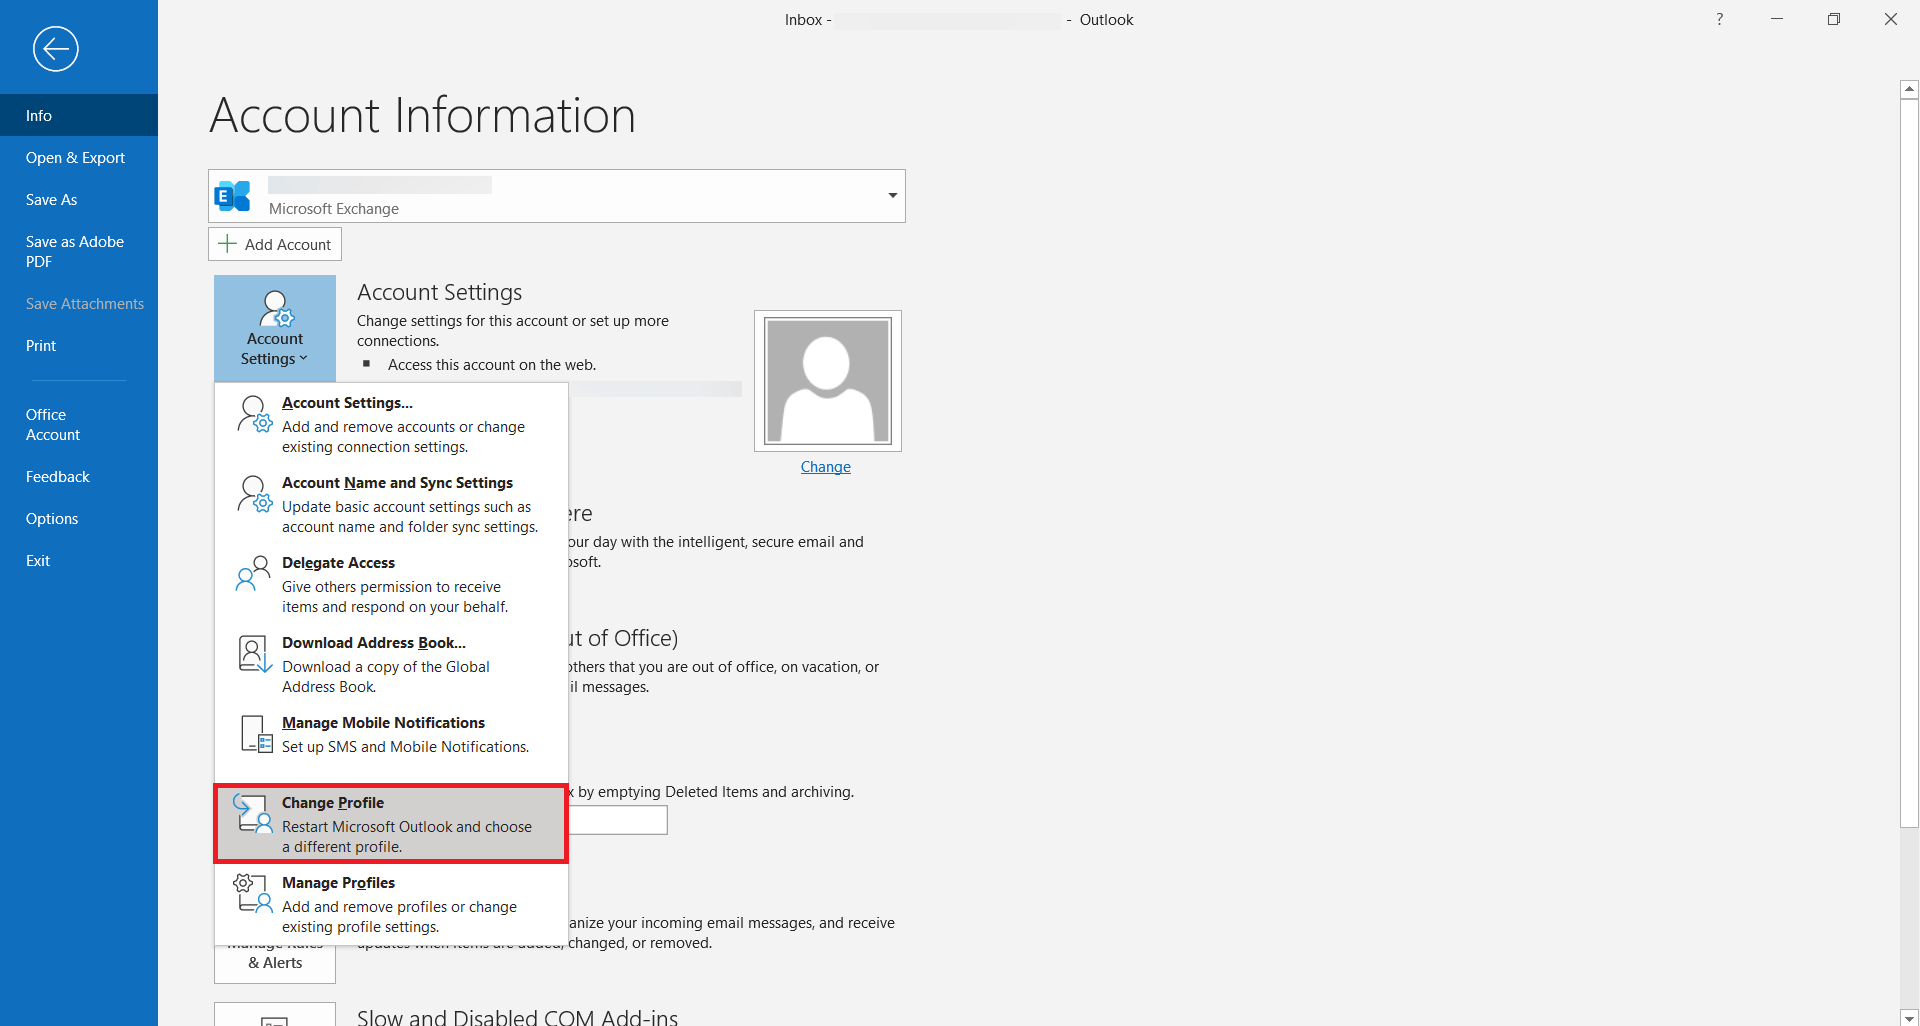 outlook keep asking for password